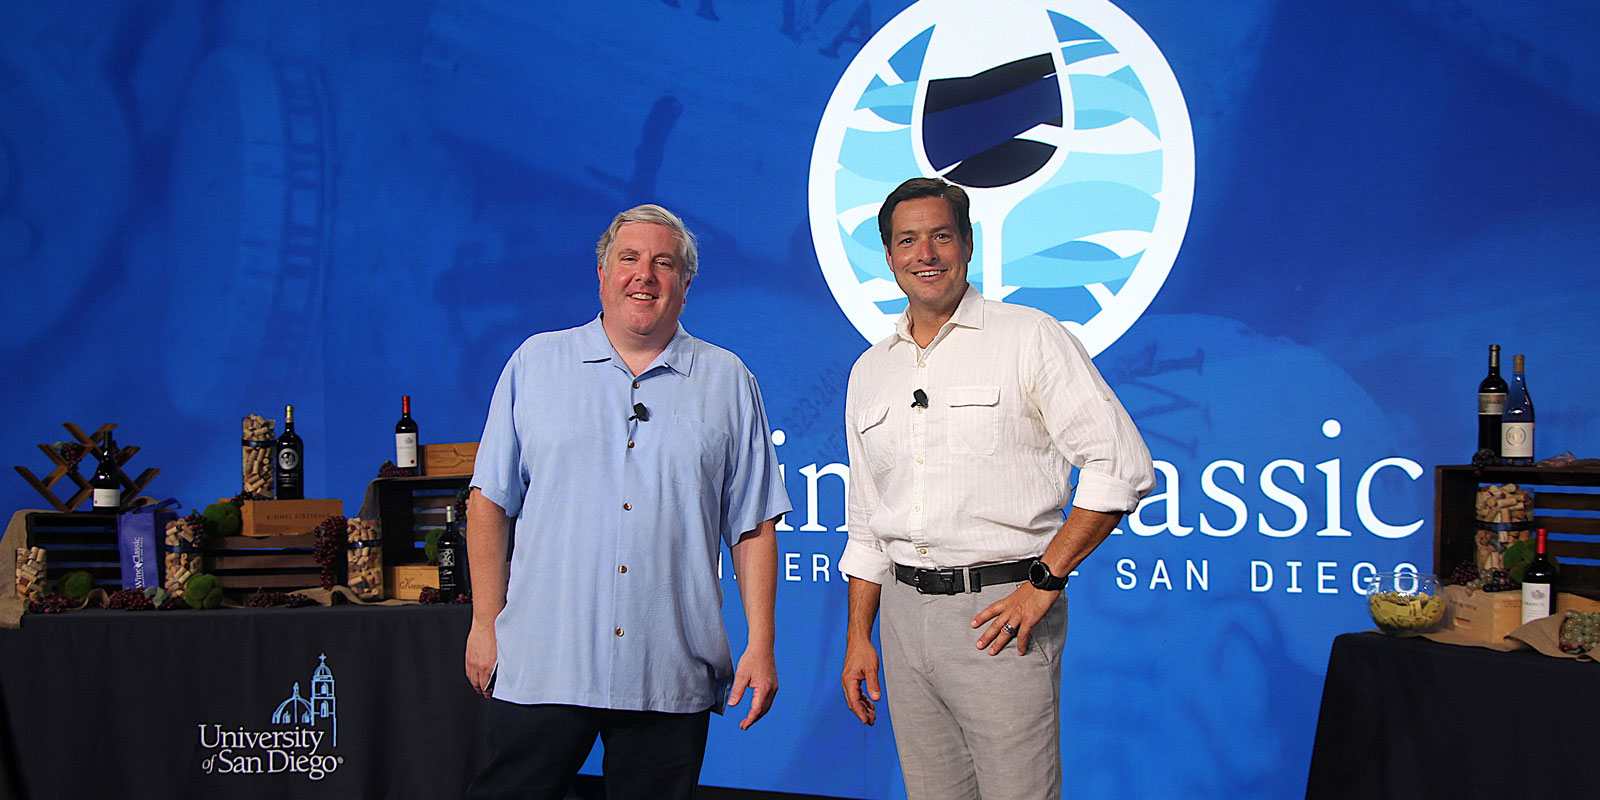 Senior Director of Alumni Relations (pictured at left, alongside Wine Classic co-host and auctioneer Clint Bell)